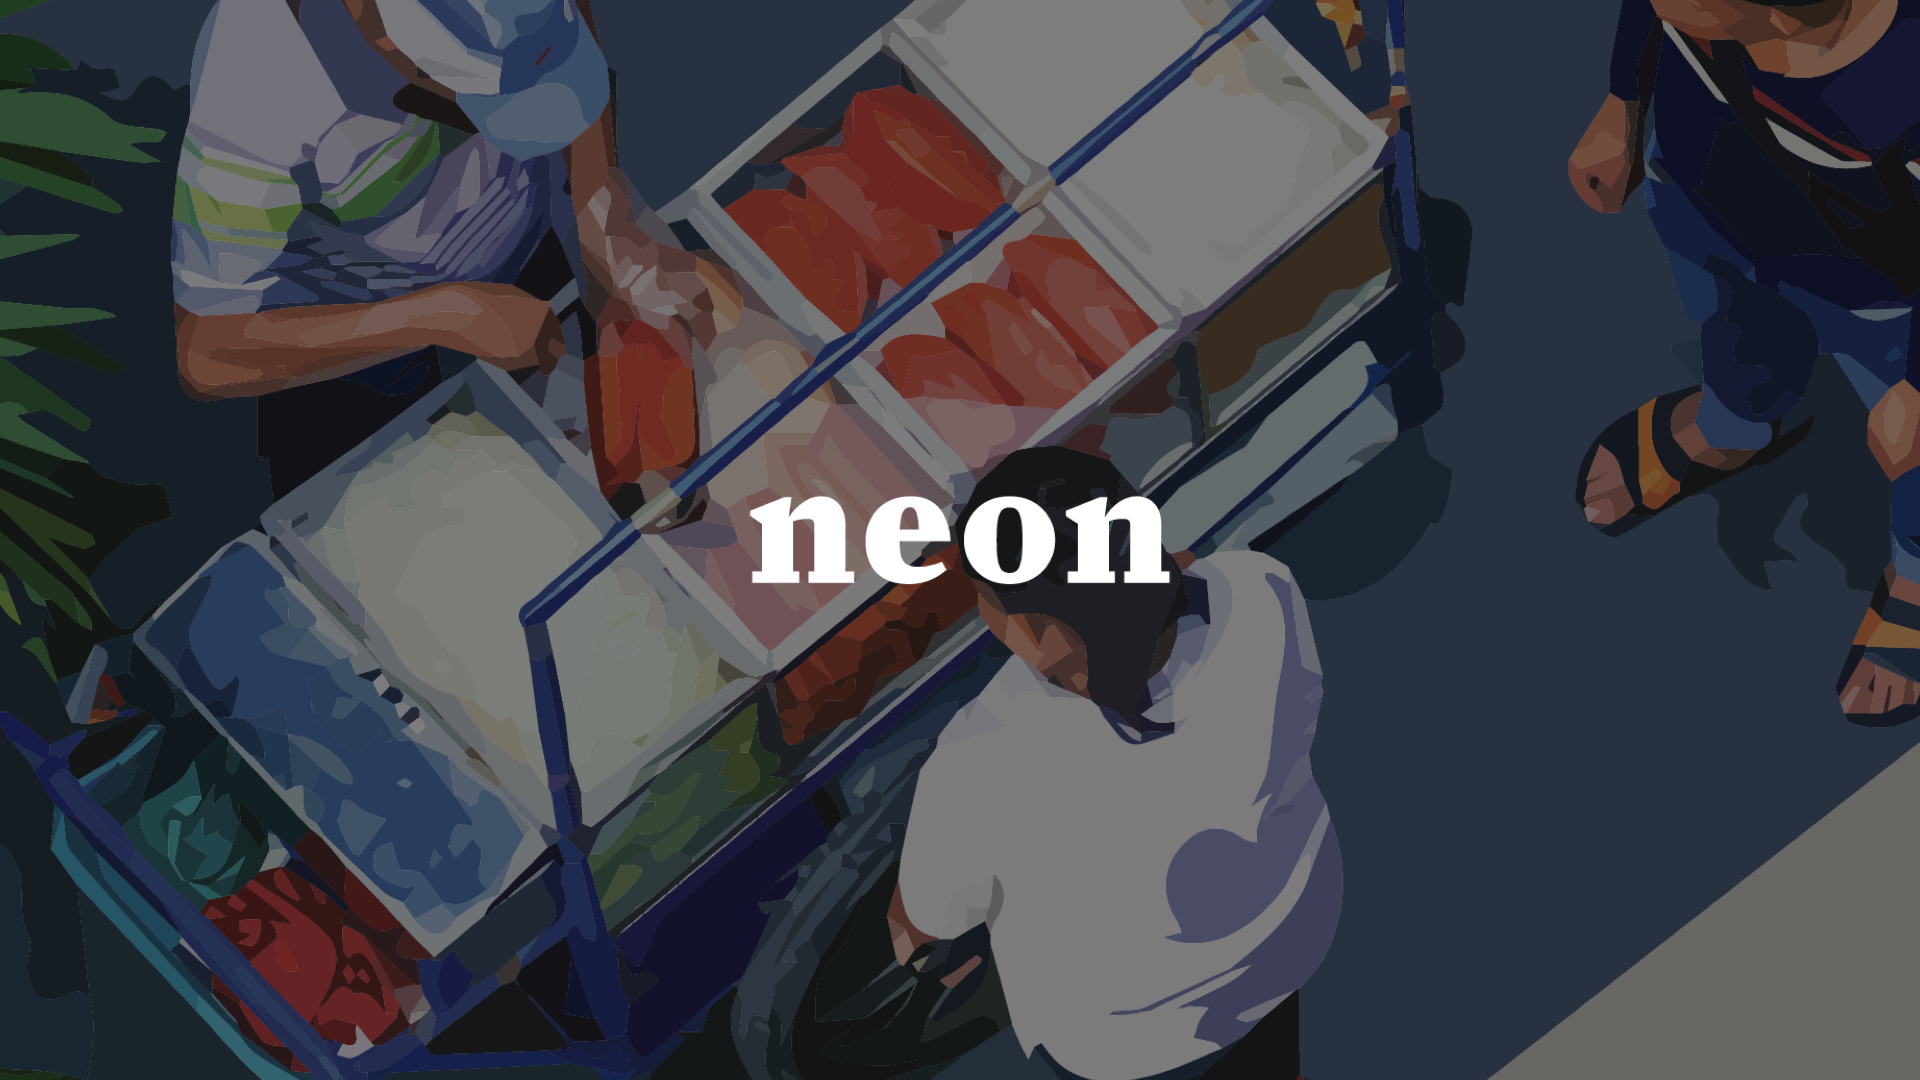 Cover image: Neon